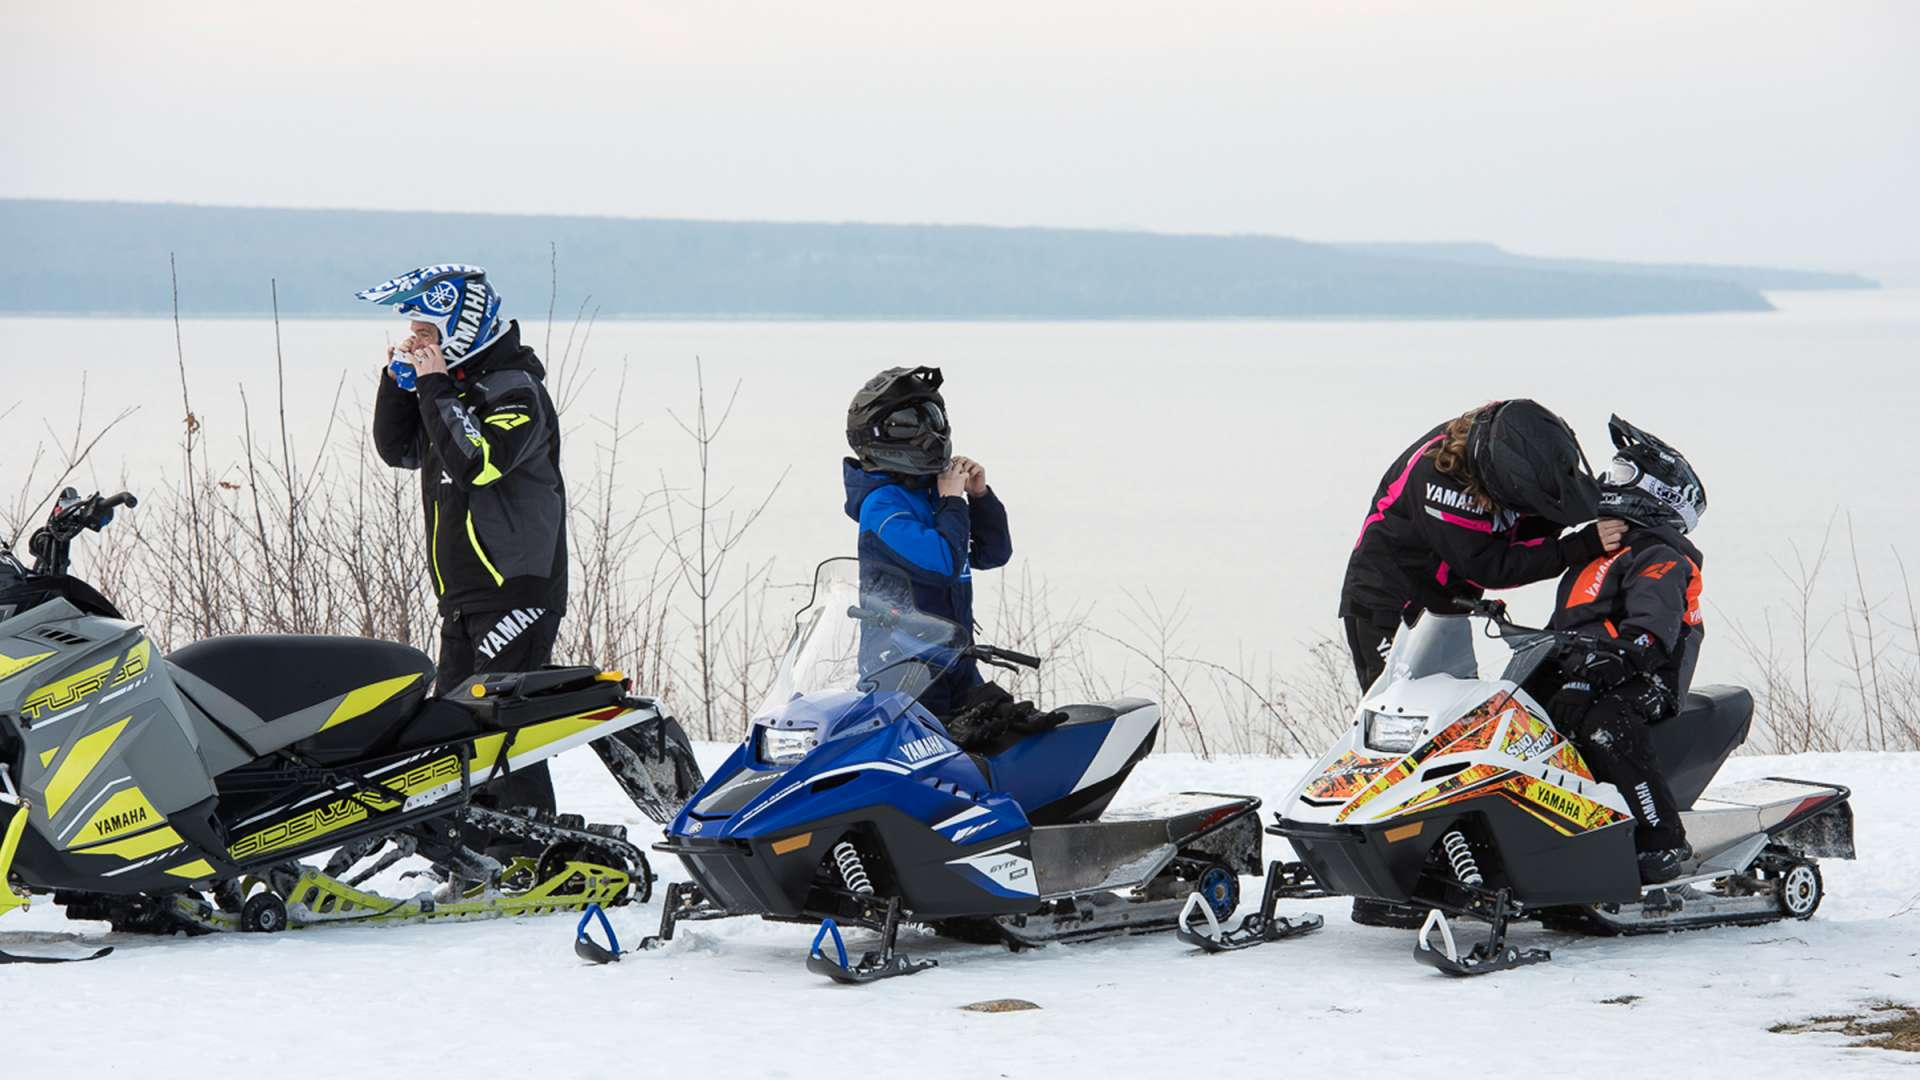 Snowmobiling at Deerhurst